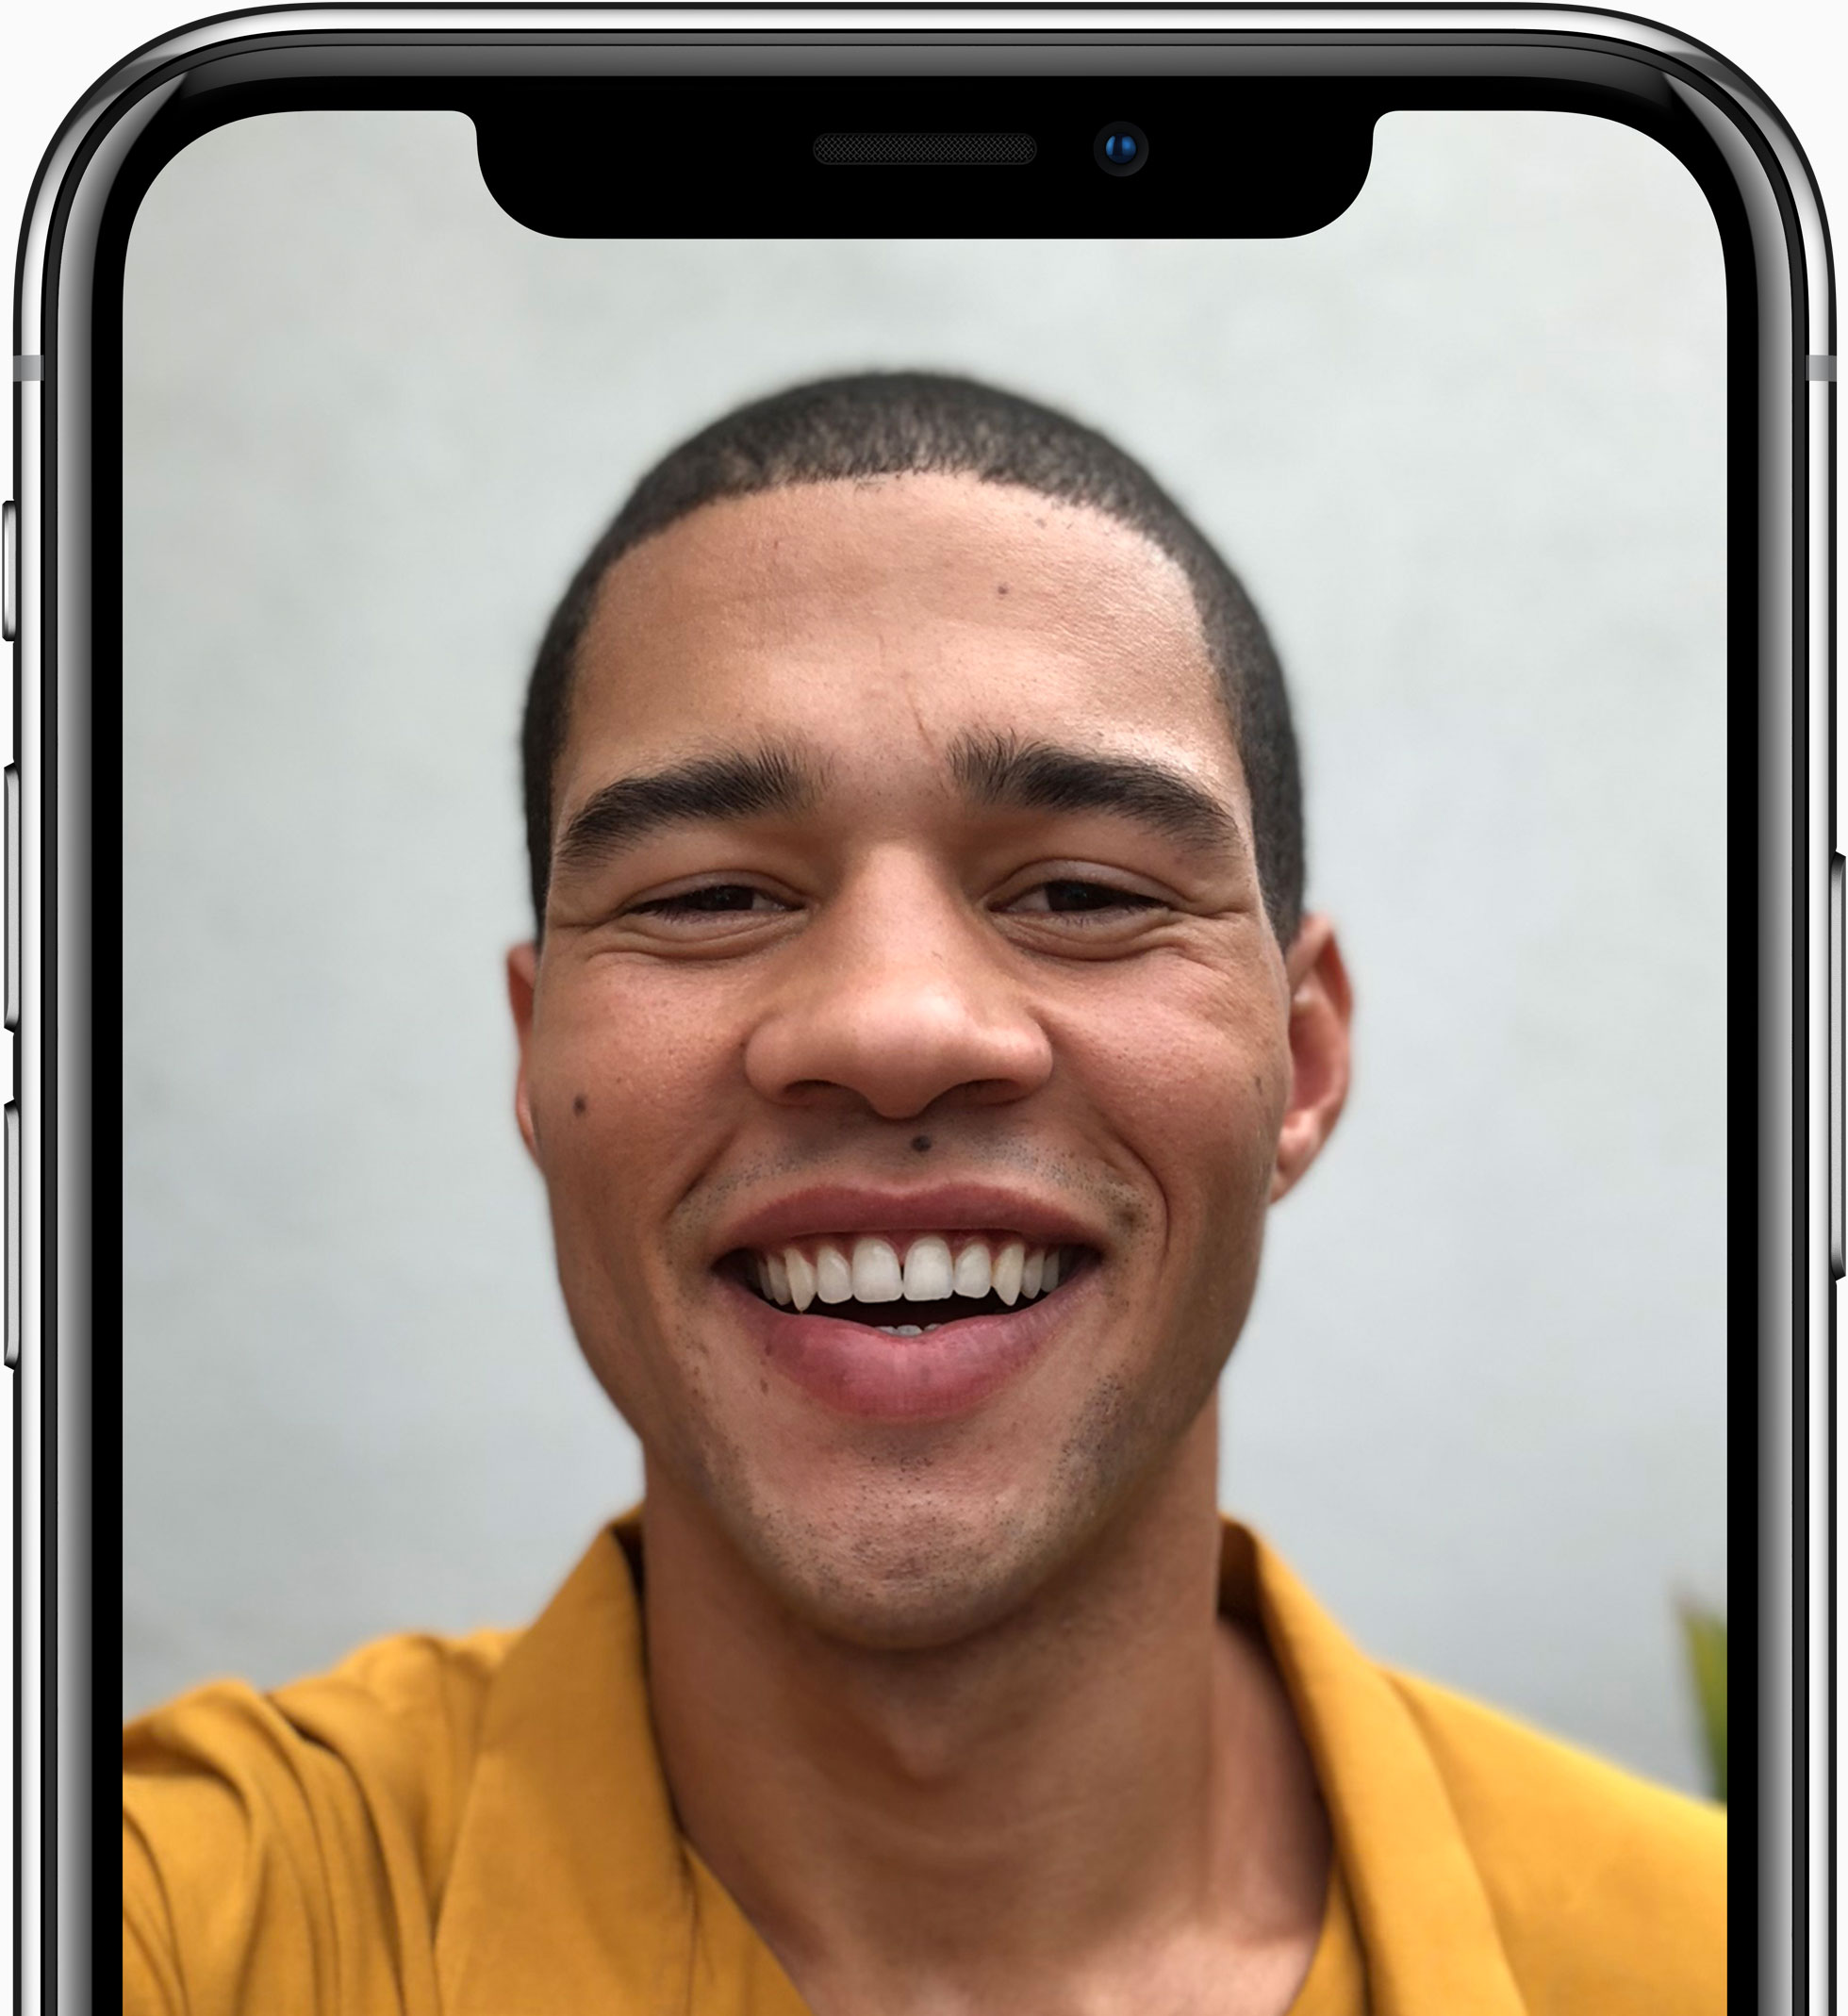 iPhone X Face ID 2